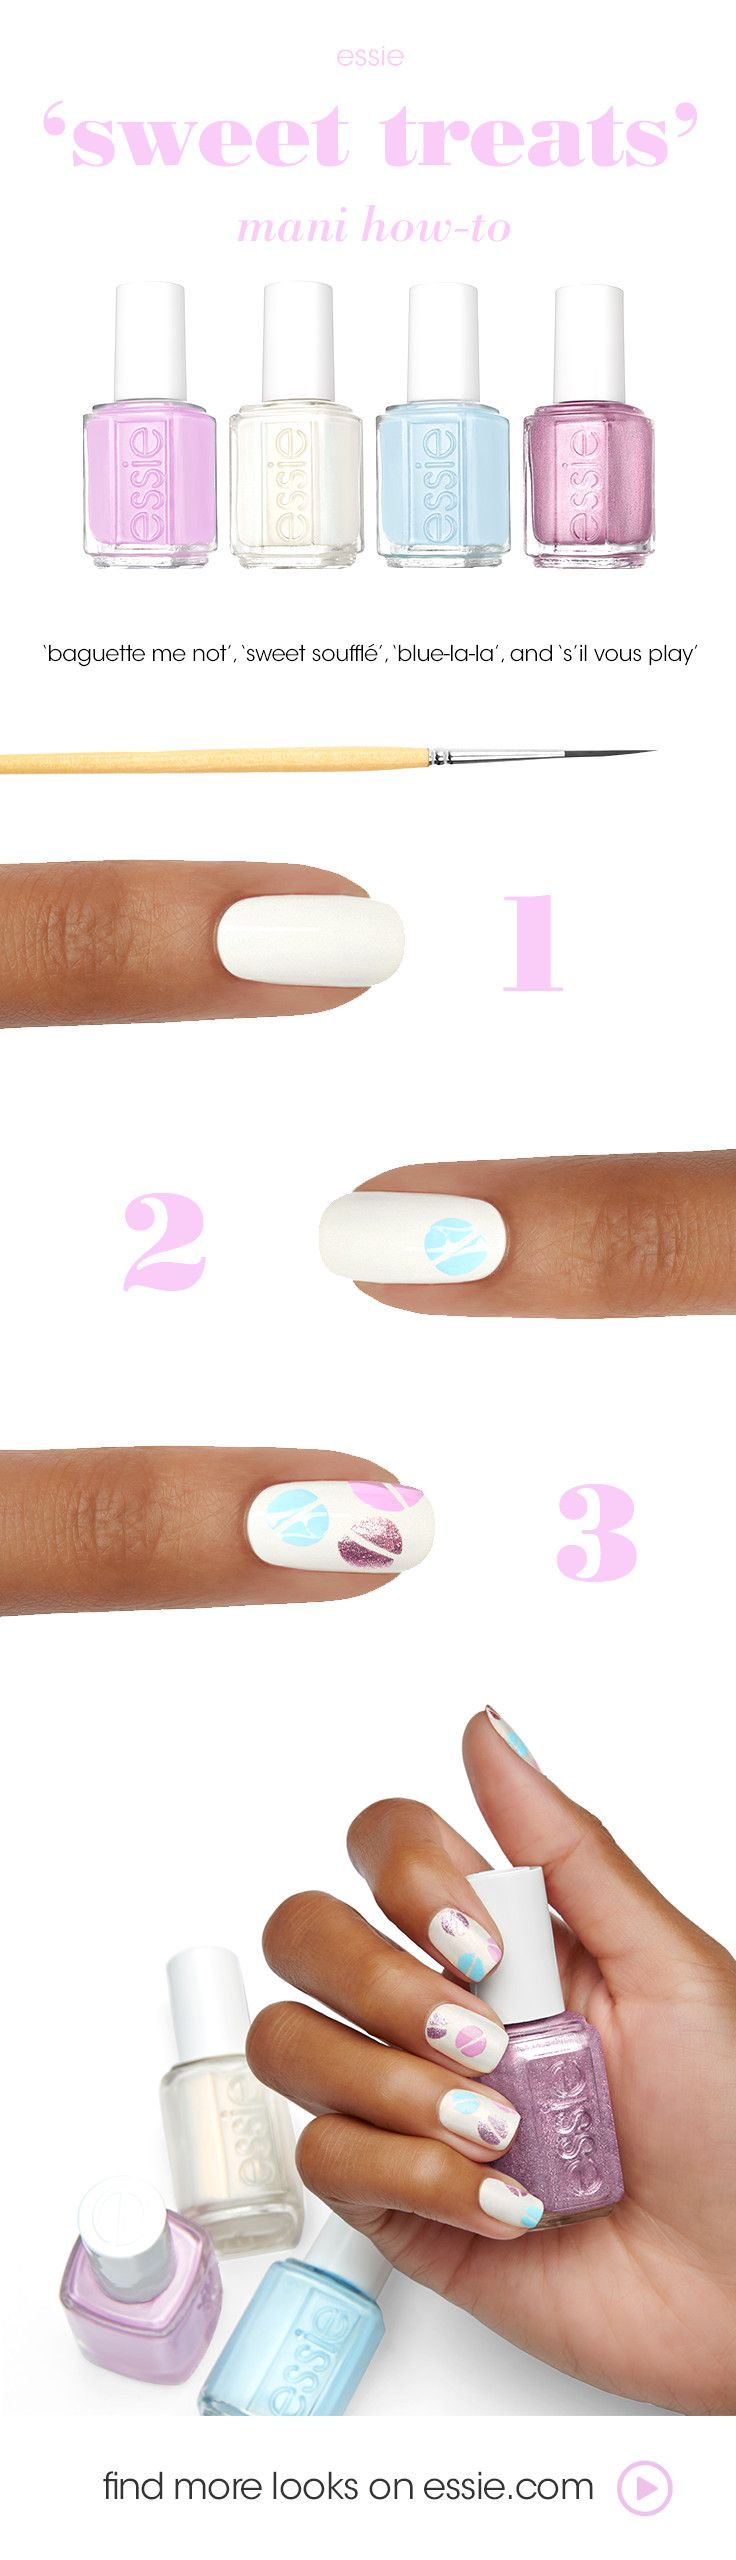 The best images about hair makeup nails u beauty tips on